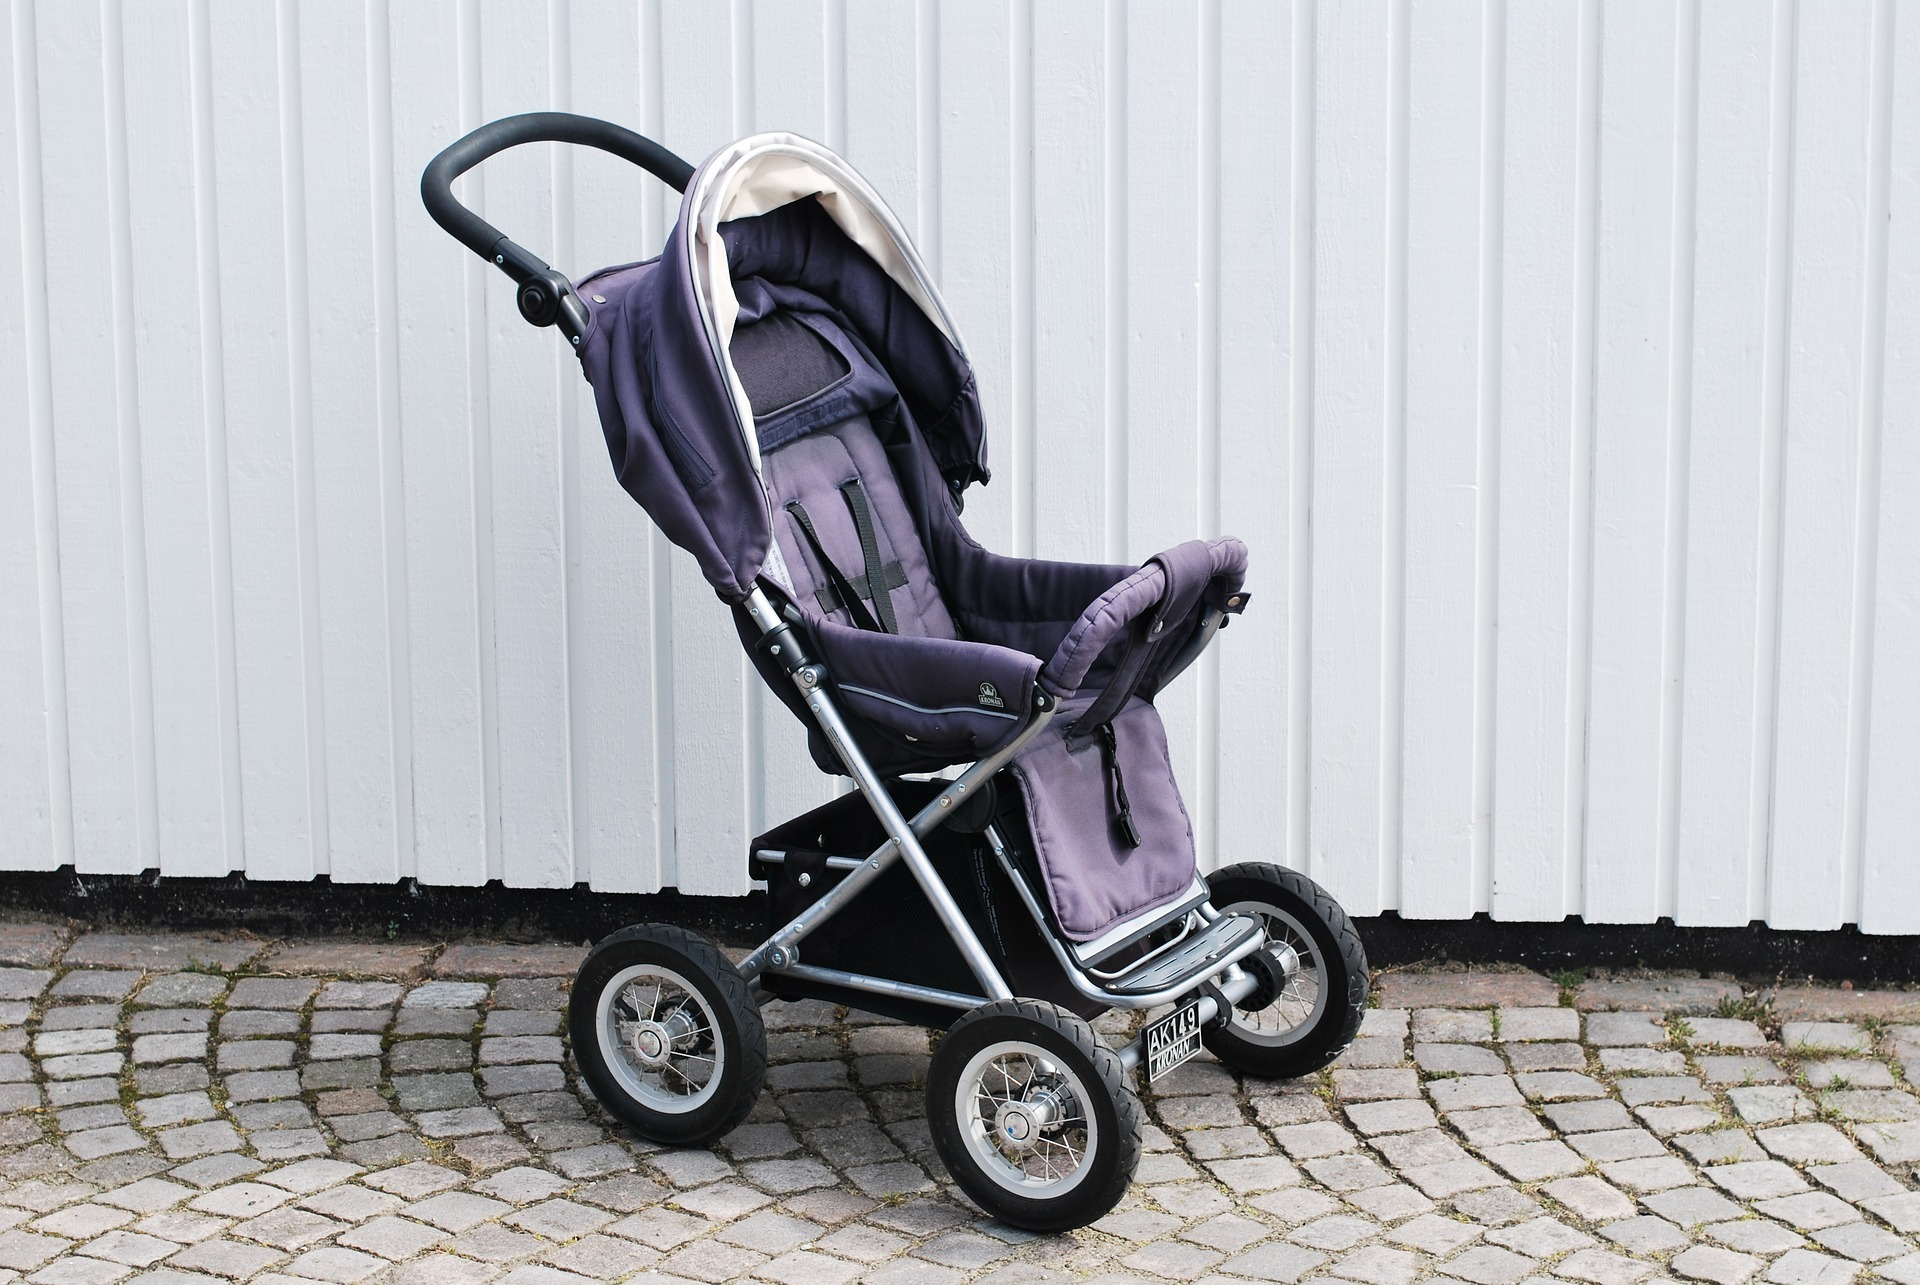 With the average cost of a stolen buggy being £487, according to the research, thefts could be costing British parents millions